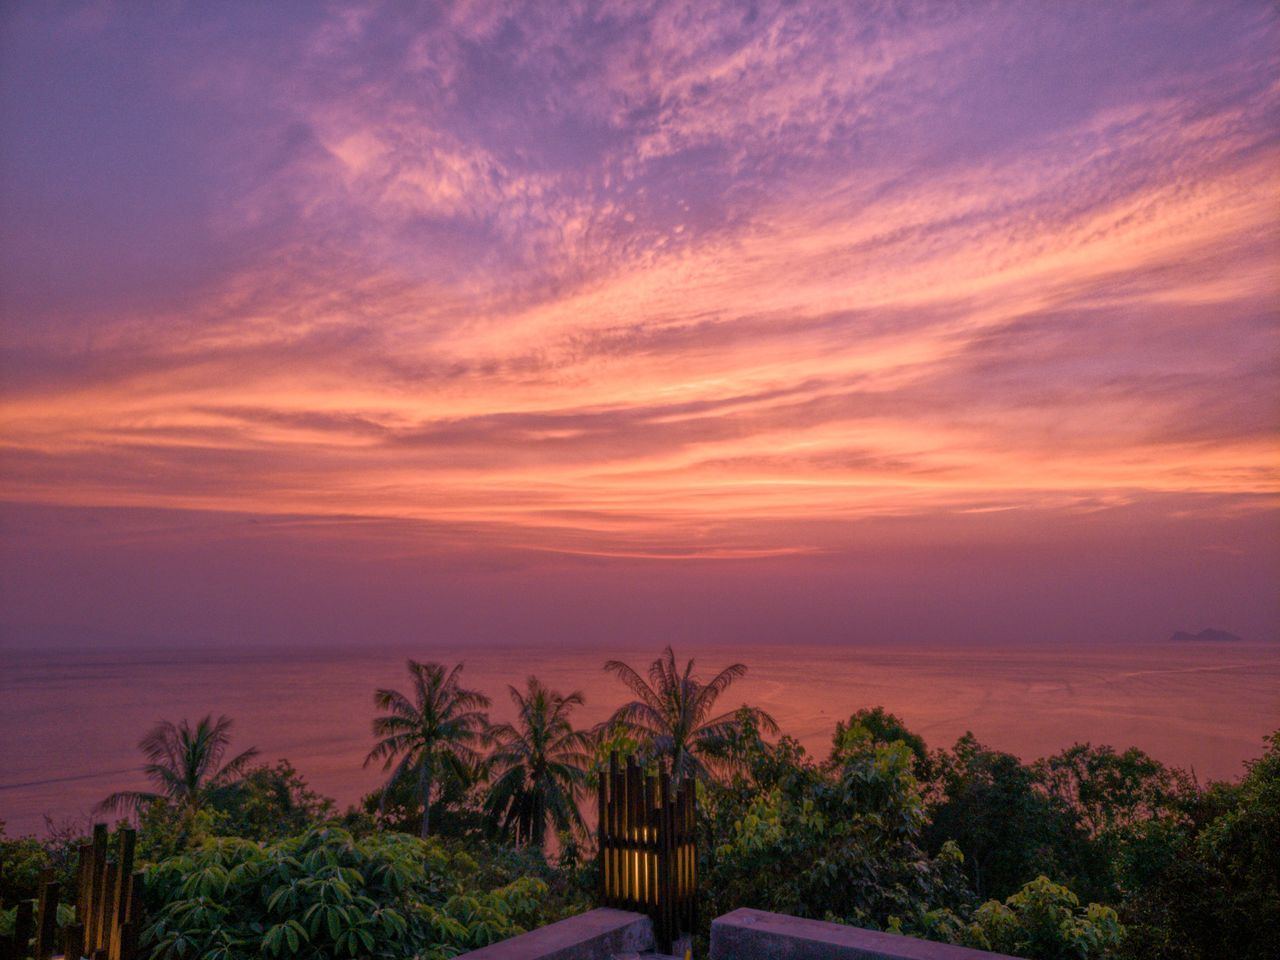 sea, sunset, scenics, beauty in nature, nature, tranquil scene, horizon over water, sky, water, tranquility, tree, palm tree, beach, idyllic, no people, outdoors, growth, cloud - sky, day